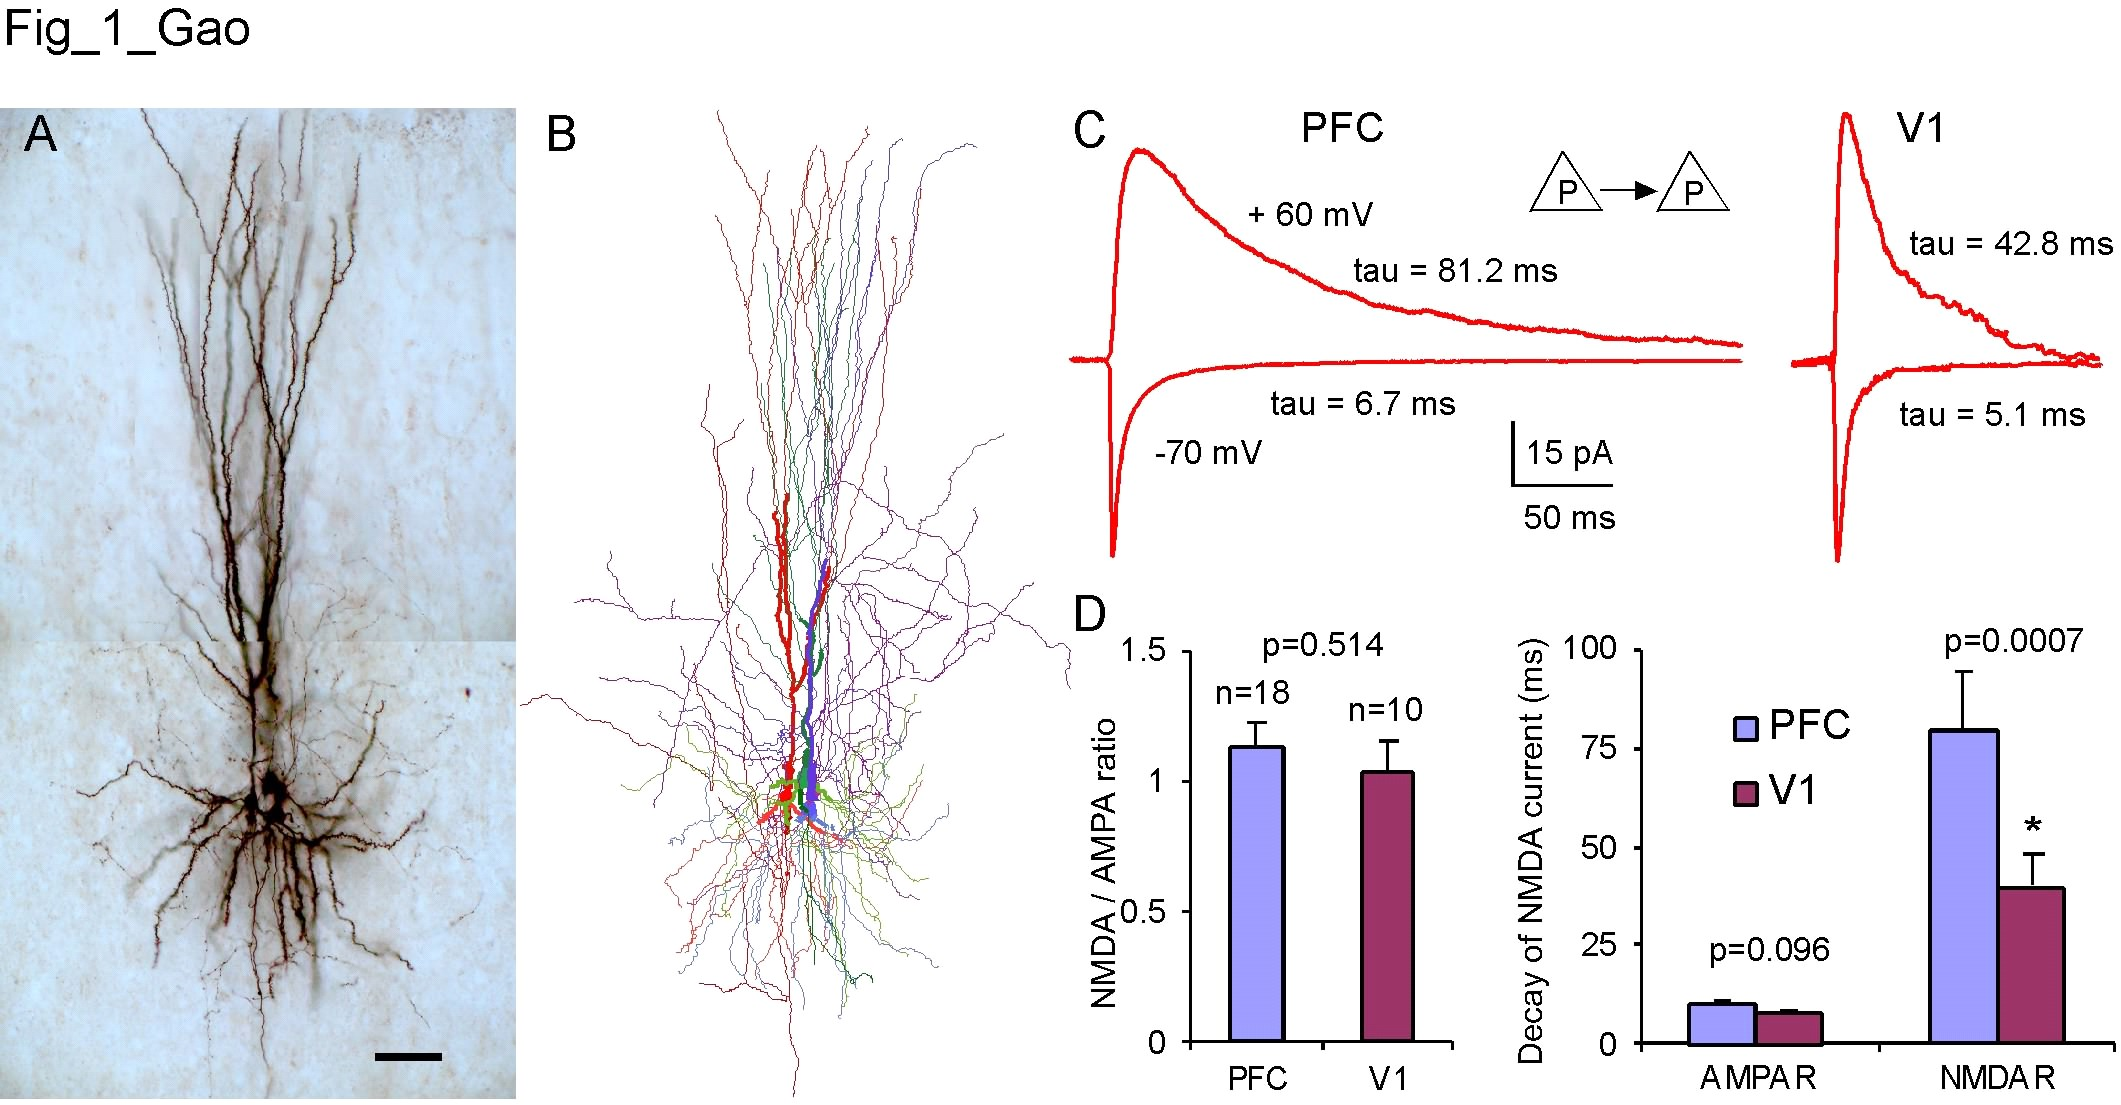 A and B, Biocytin-labeled layer 5 pyramidal neurons from multiple recordings and Neurolucida reconstruction, respectively; C and D, NMDA and AMPA receptor-mediaed currents recorded from the monosynaptic connections between pyramidal neurons in the adult rat prefrontal cortex.